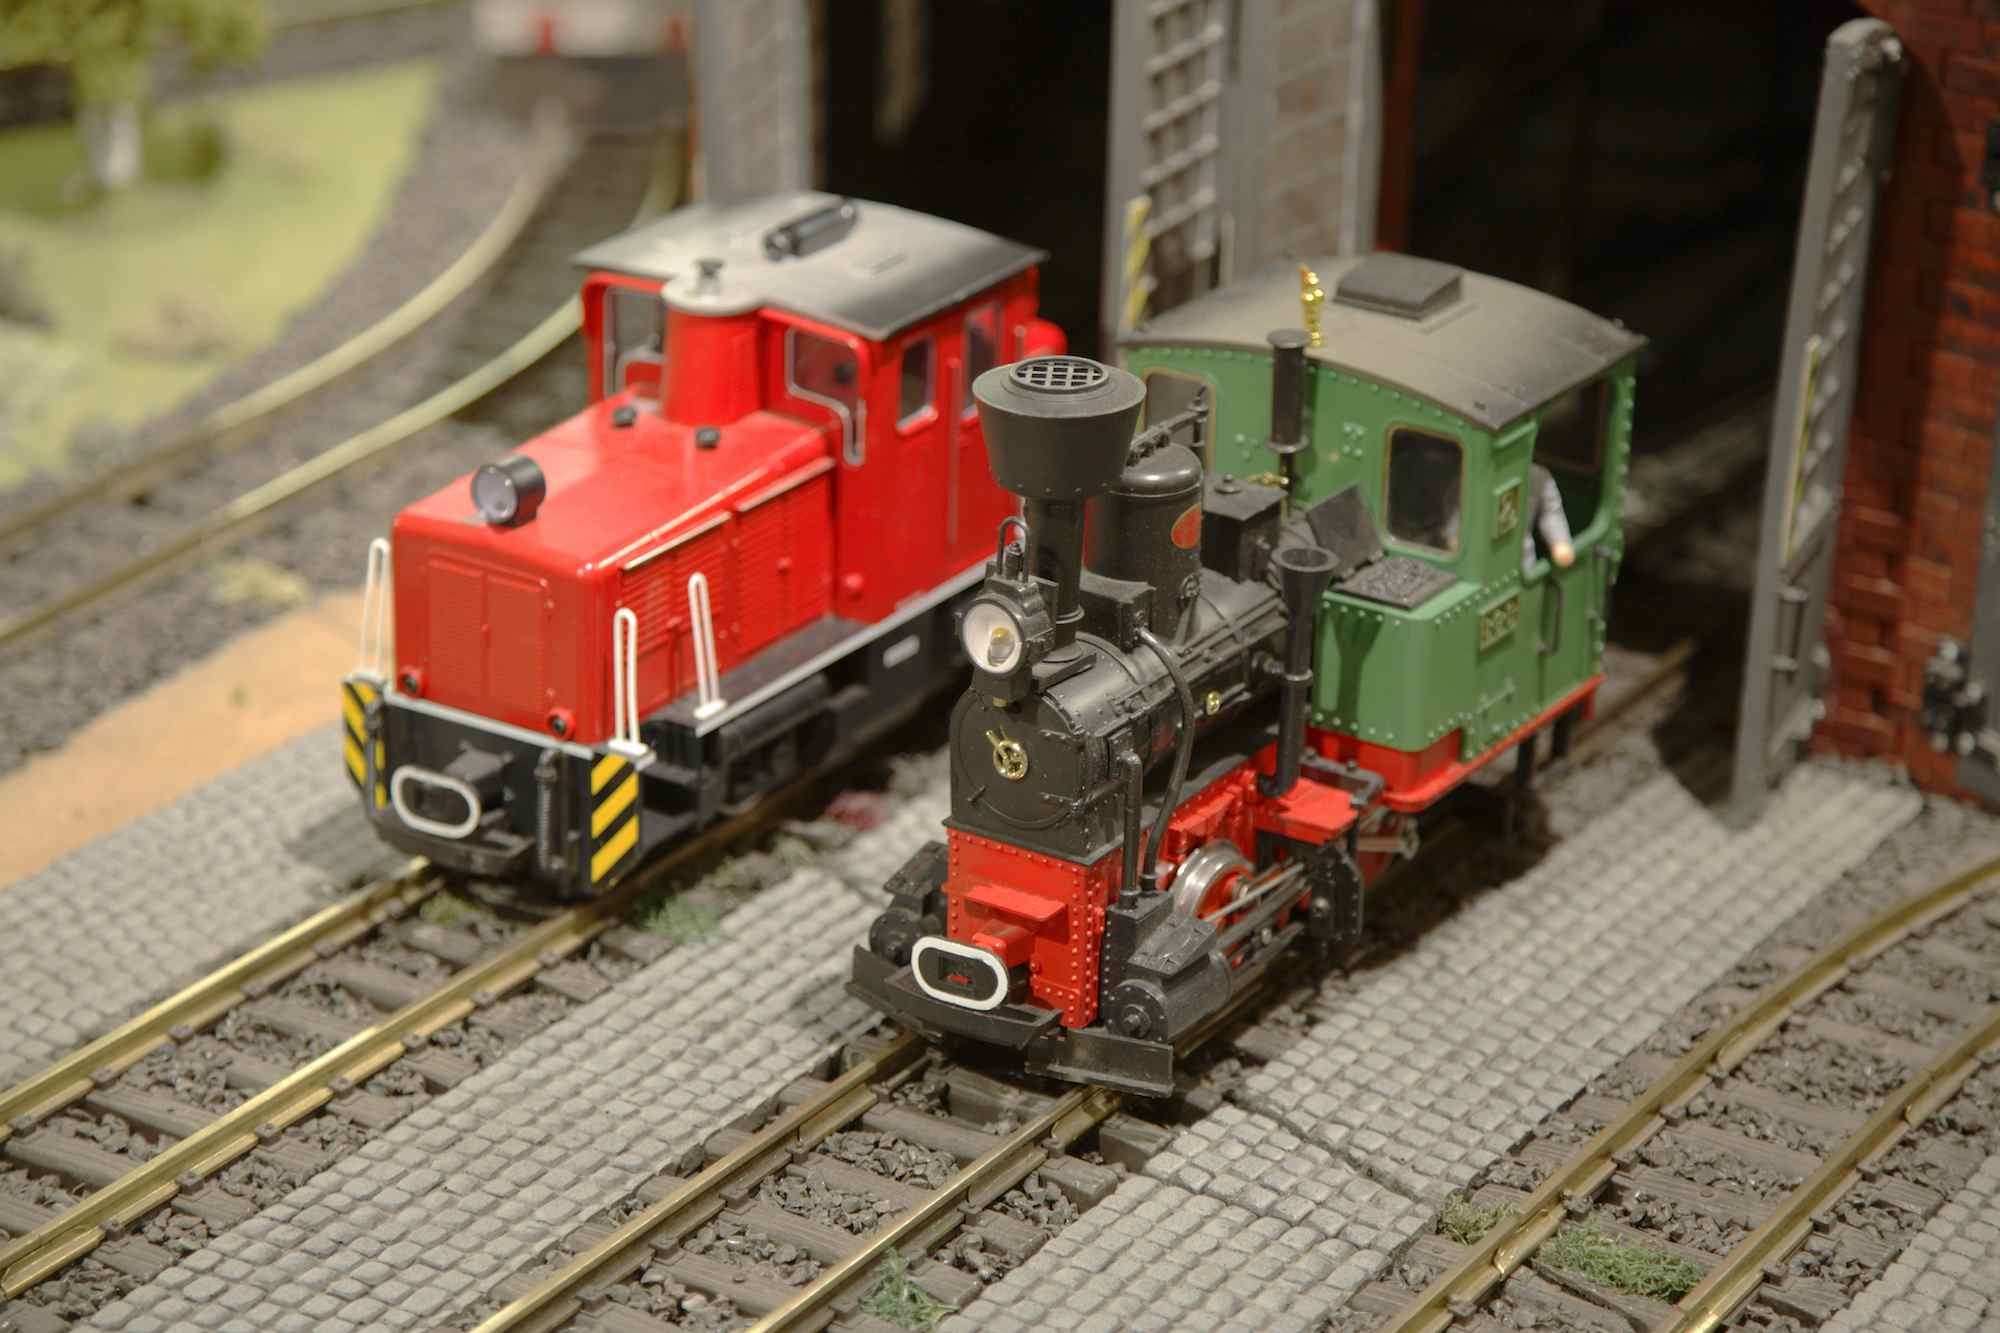 Choosing The Right Transformer For Your Model Trains Center Off Switch Wired To Control Lionel Remote Track